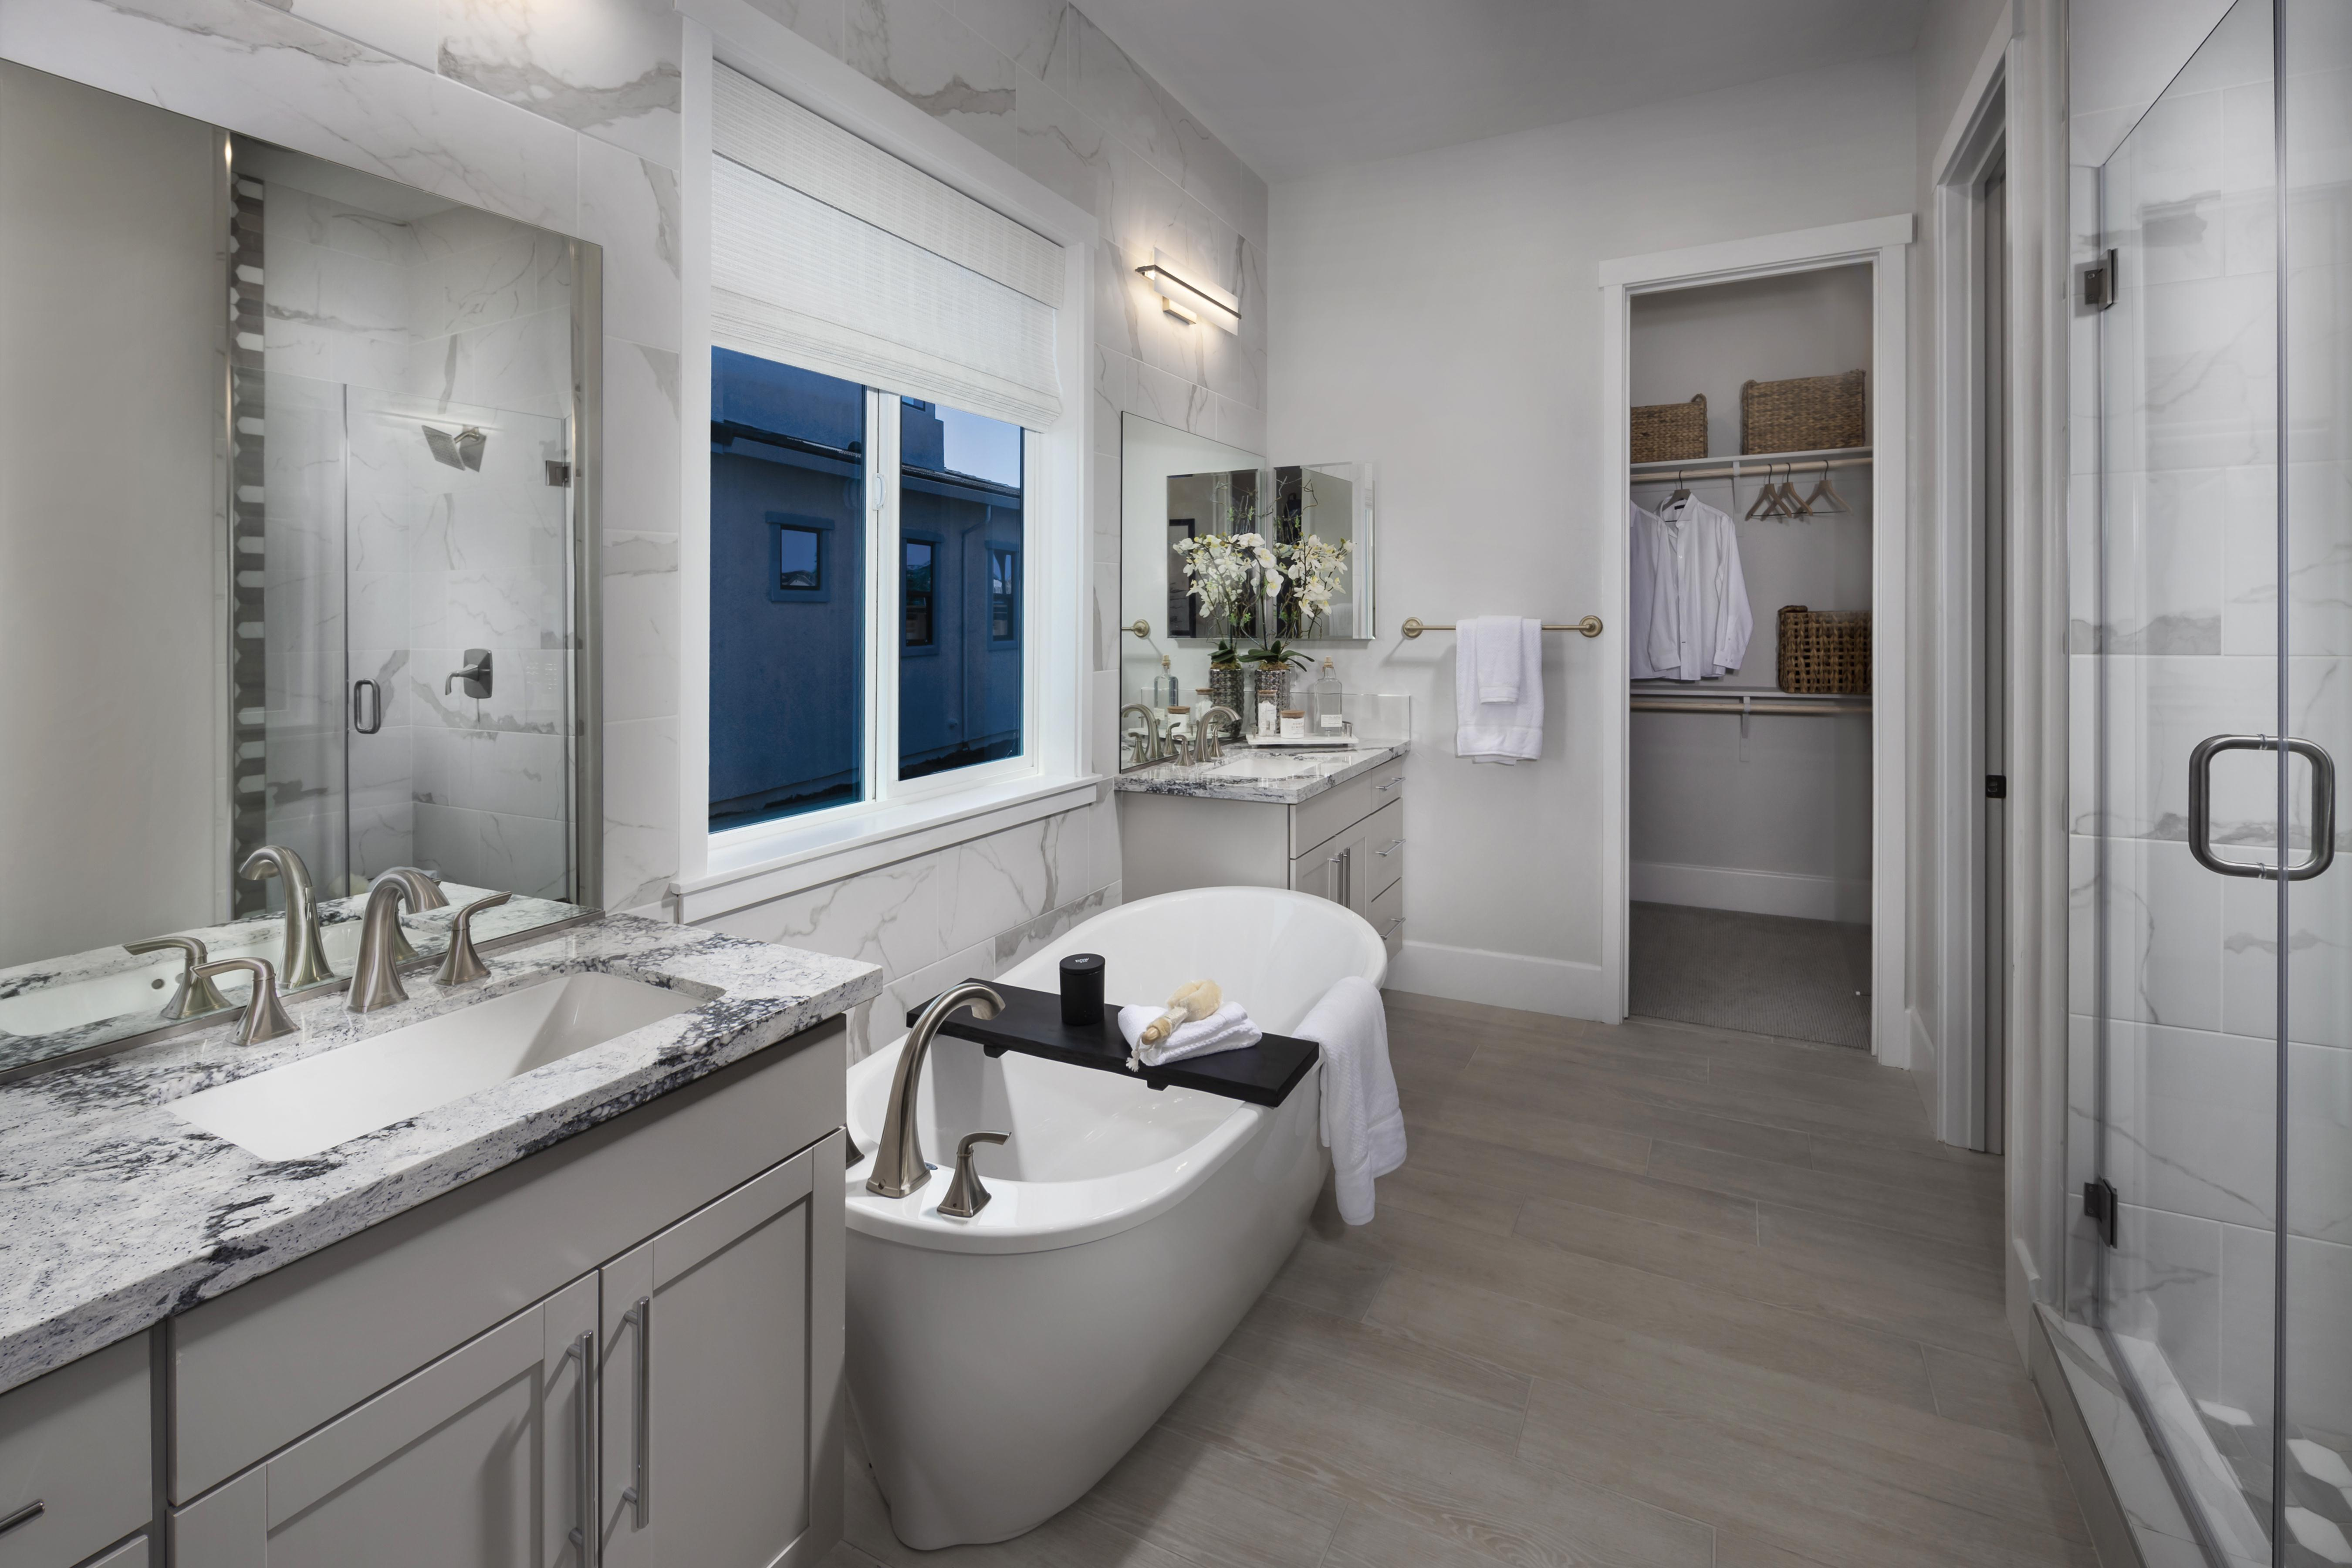 Bathroom featured in the Residence One-X By Tim Lewis Communities in Sacramento, CA